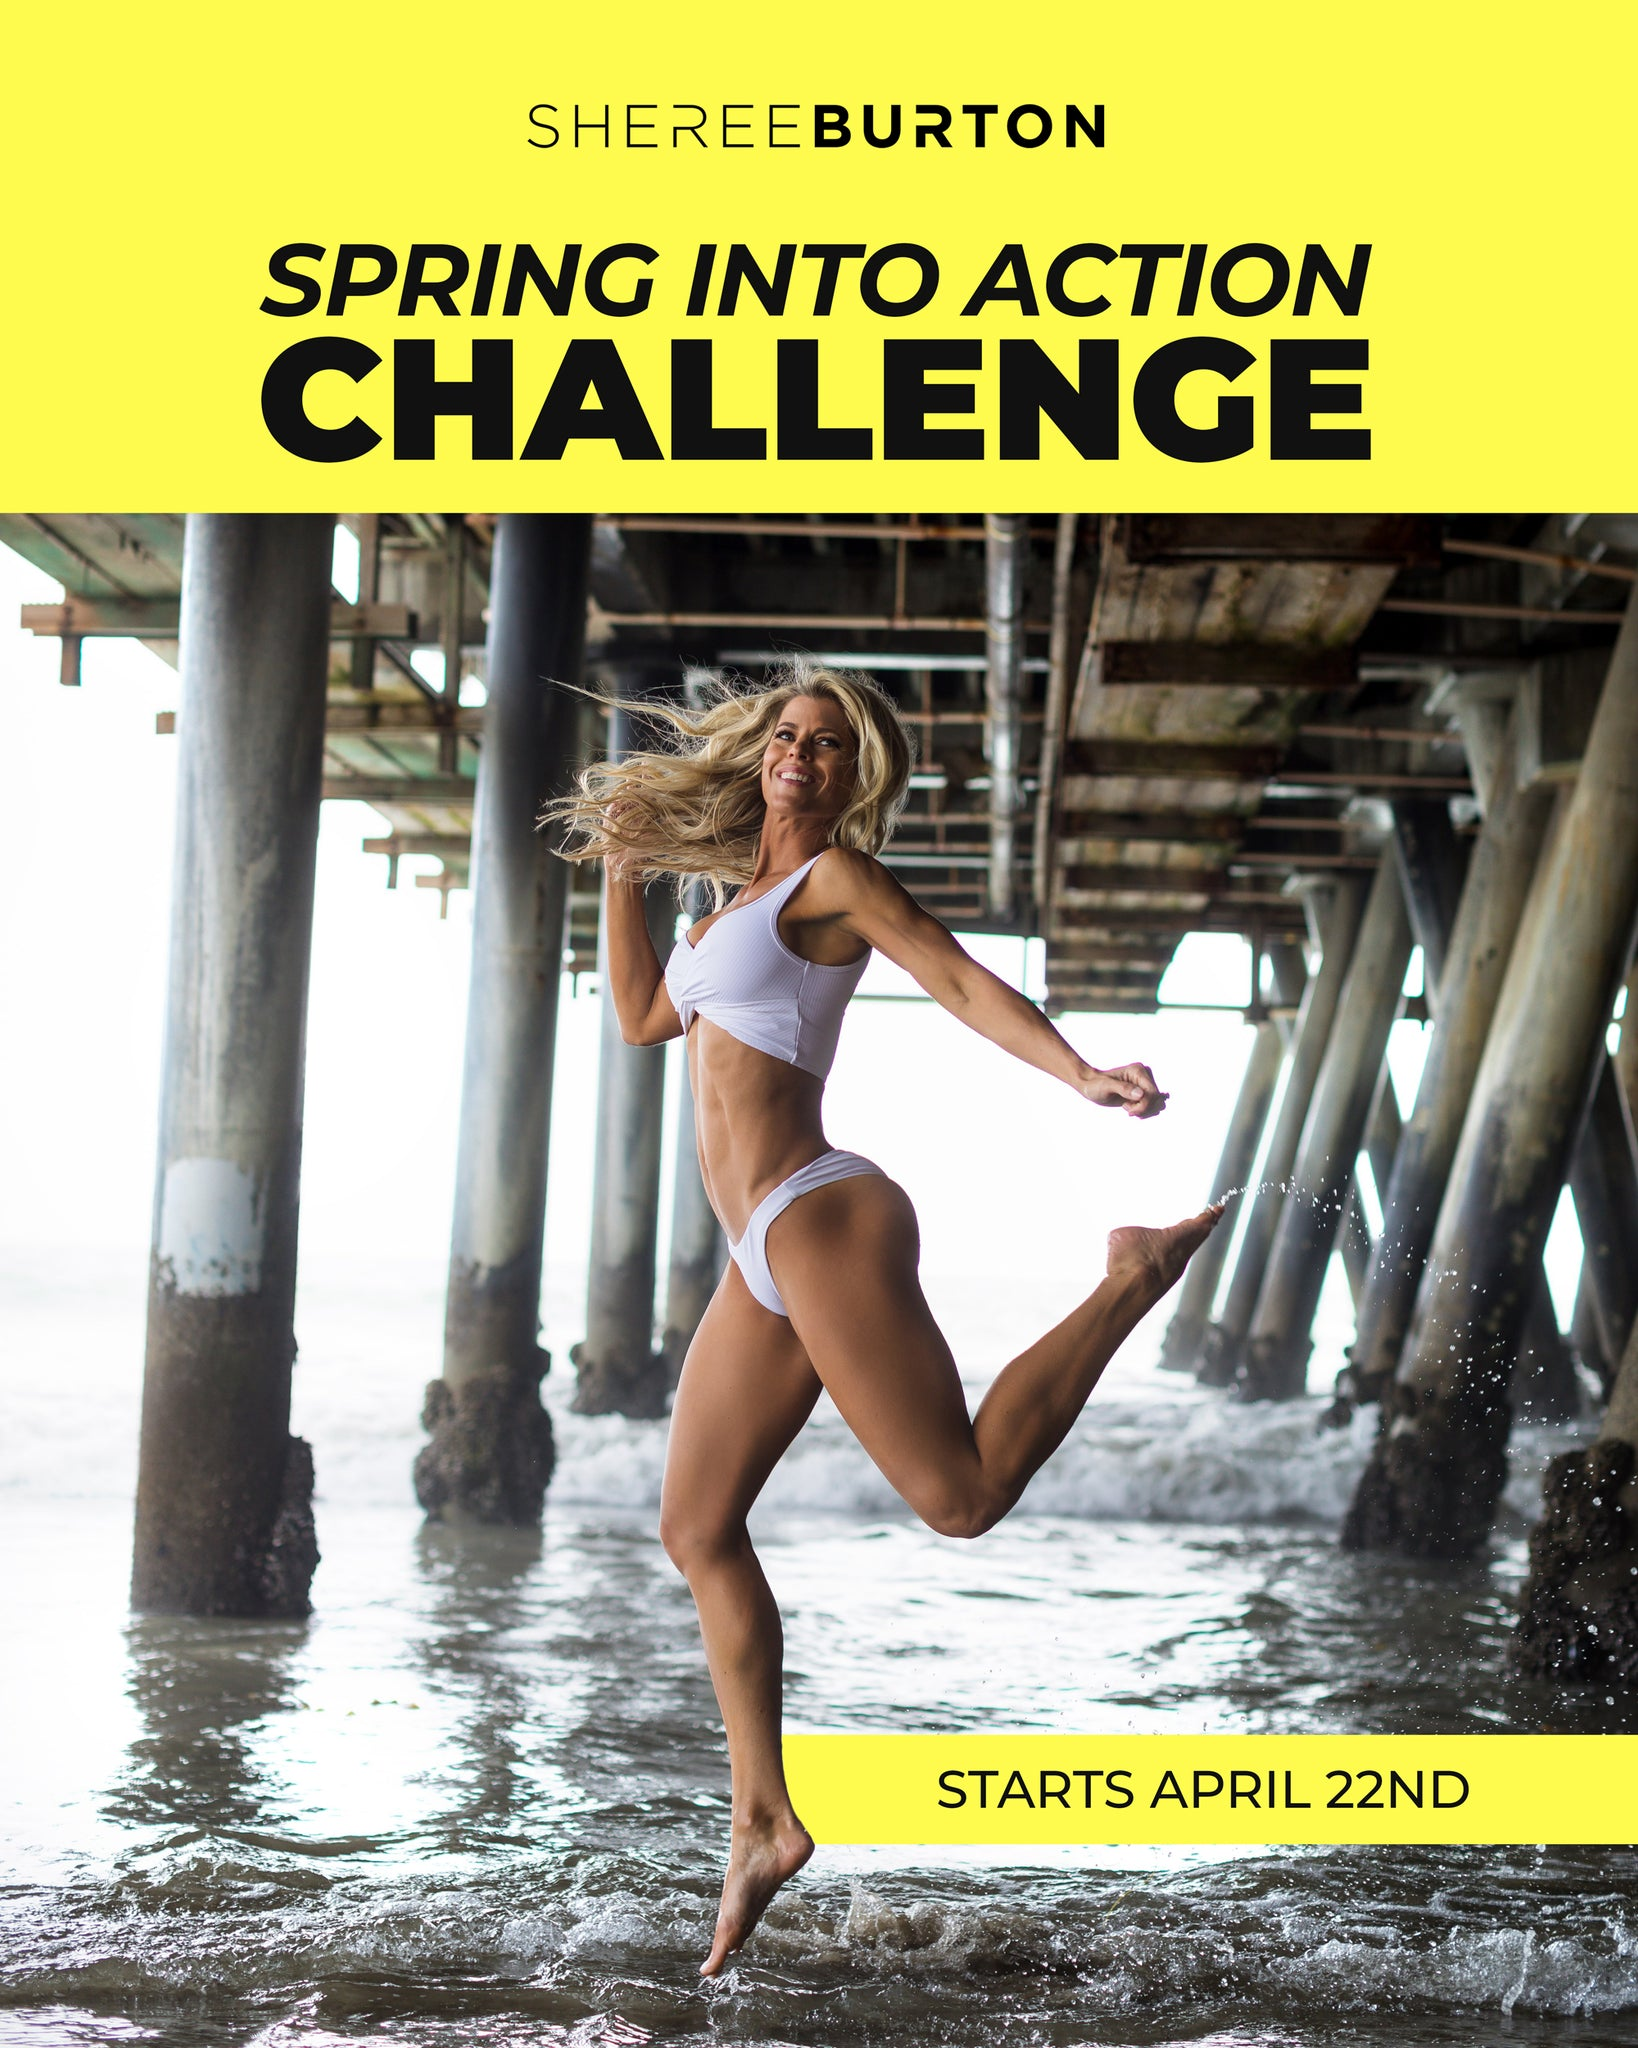 Sheree's Spring Into Action 10-Day Challenge!